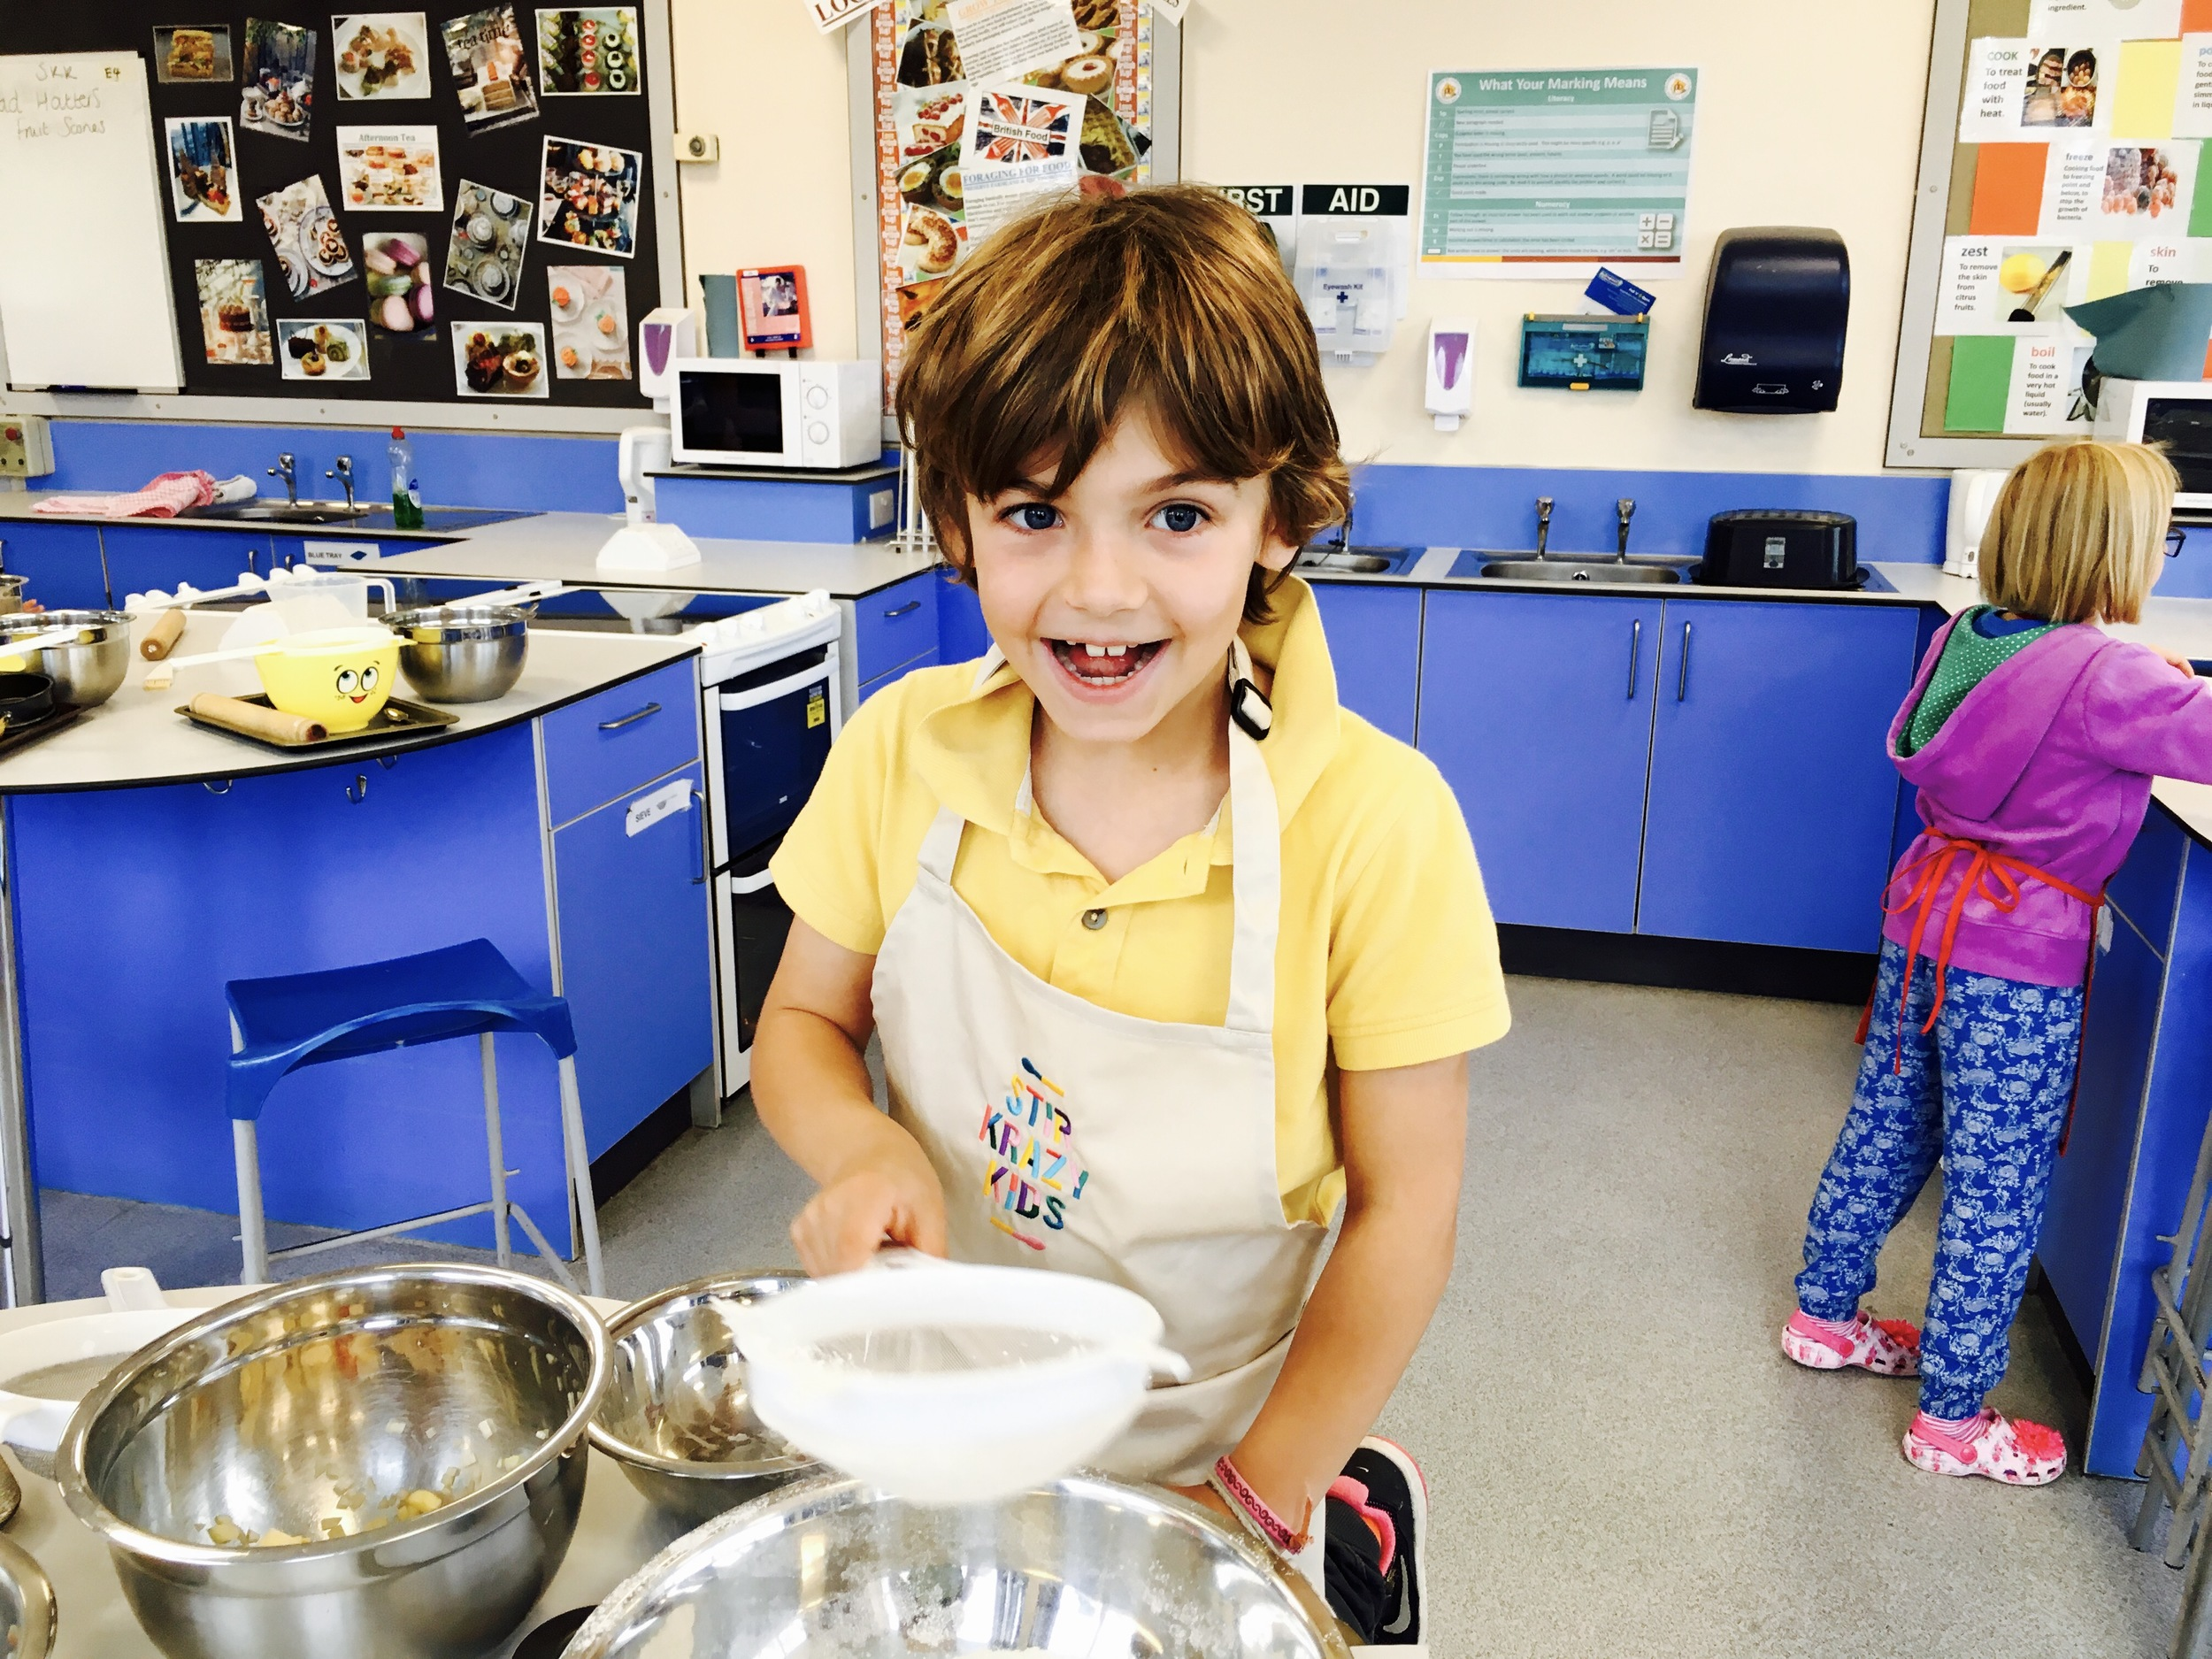 Big smiles as we sift the flour for our pastry!